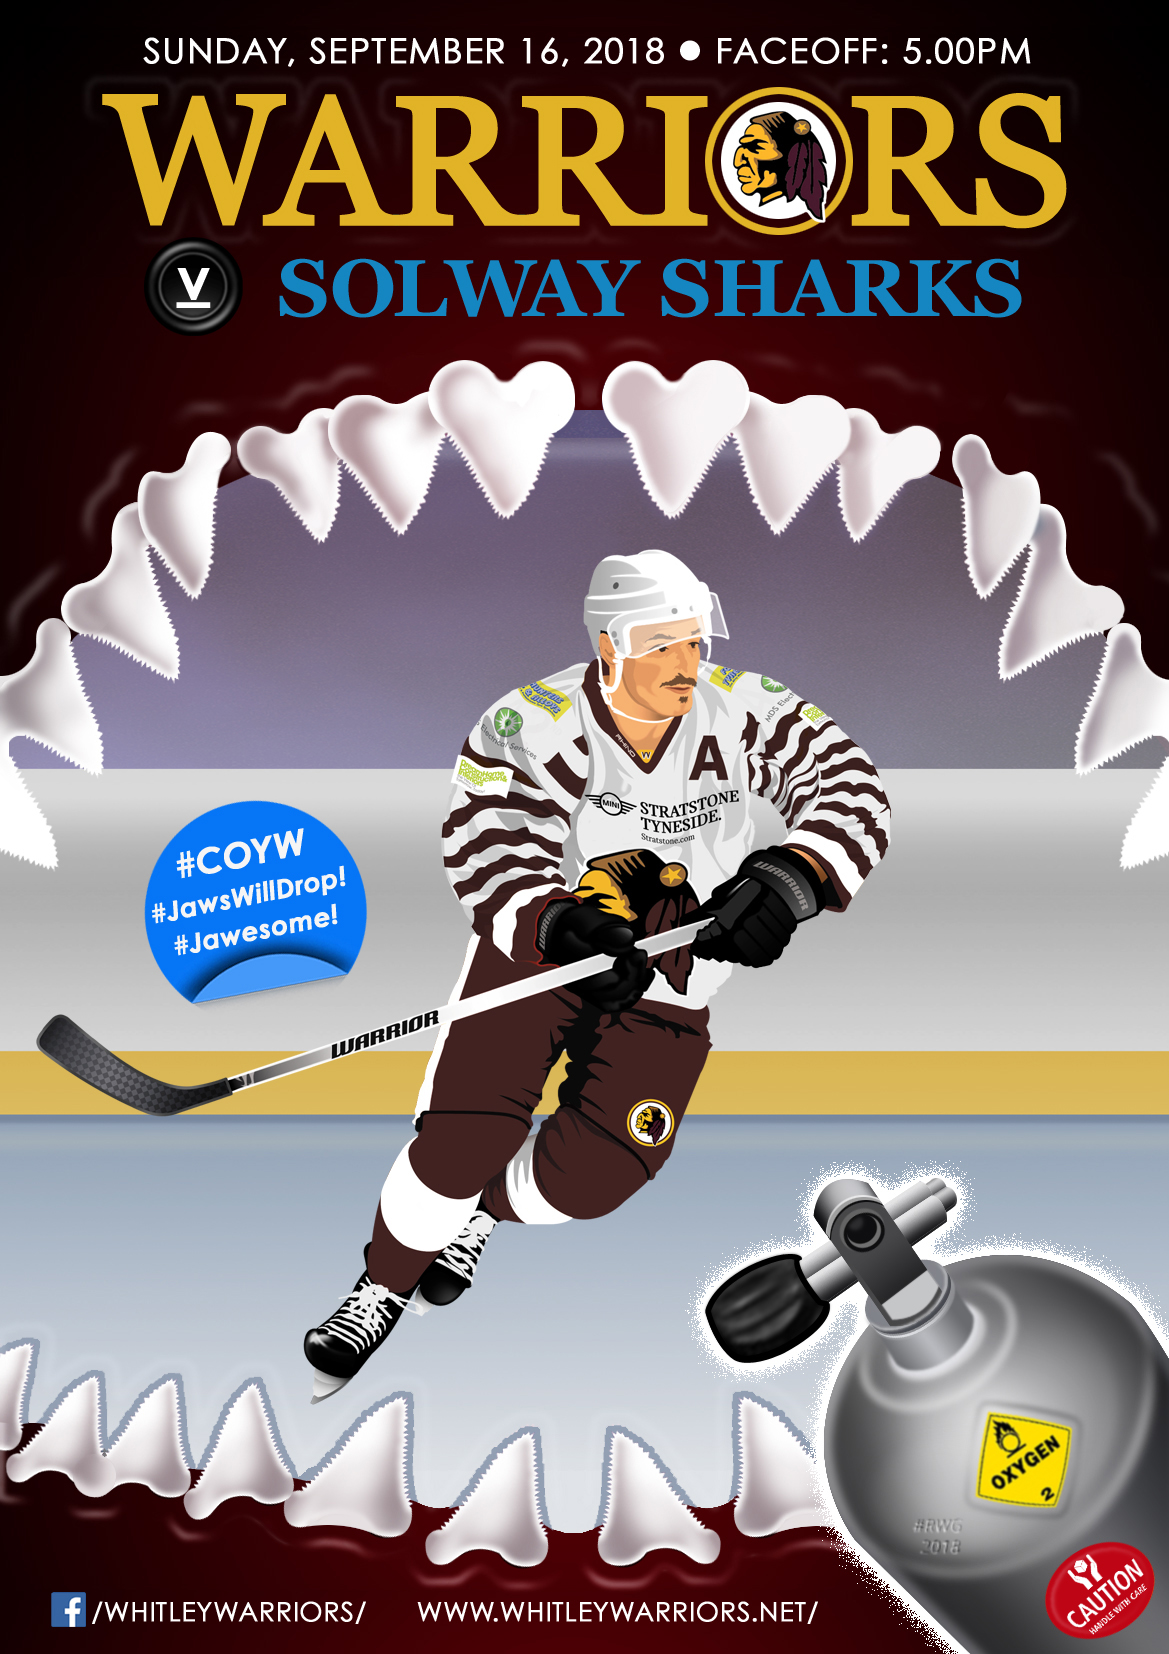 Whitley Warriors vs Solway Sharks @ Whitley Bay Ice Rink, Sunday 16 September, face off 5pm